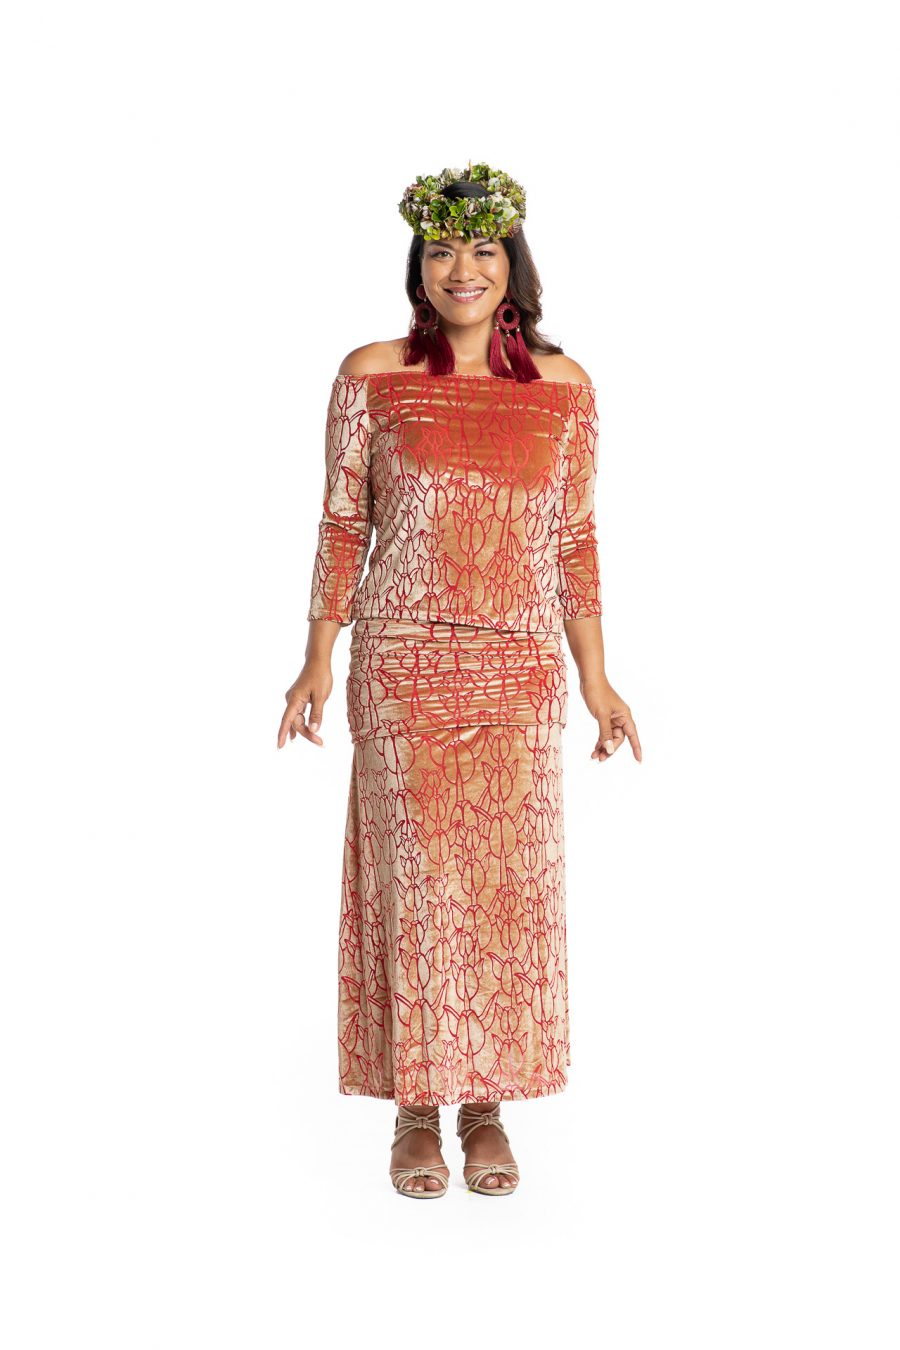 Model wearing Poohiwi Dress in Apricot - Front View